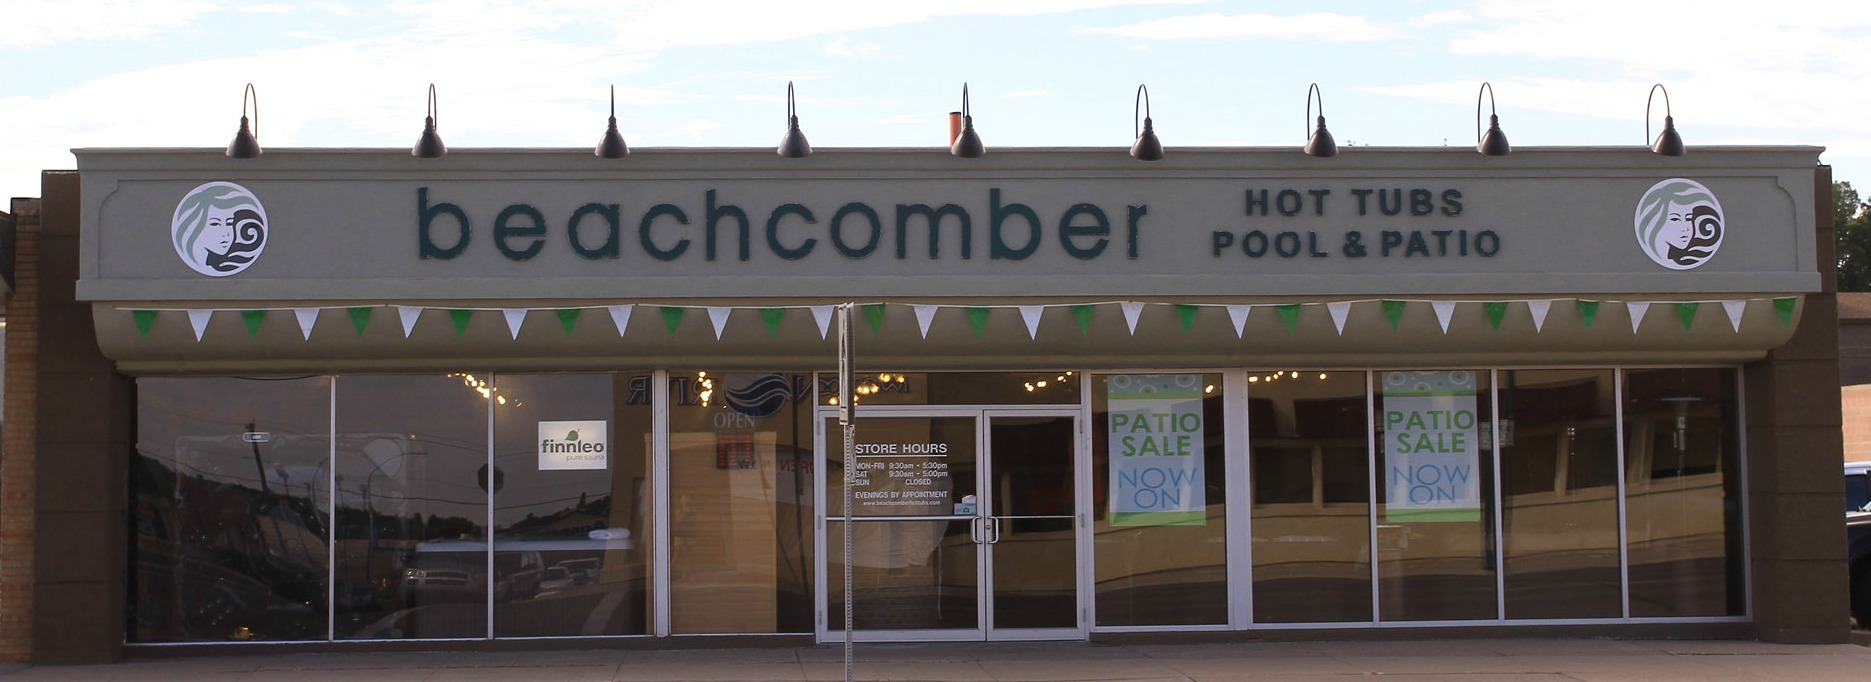 Beachcomber Lethbridge